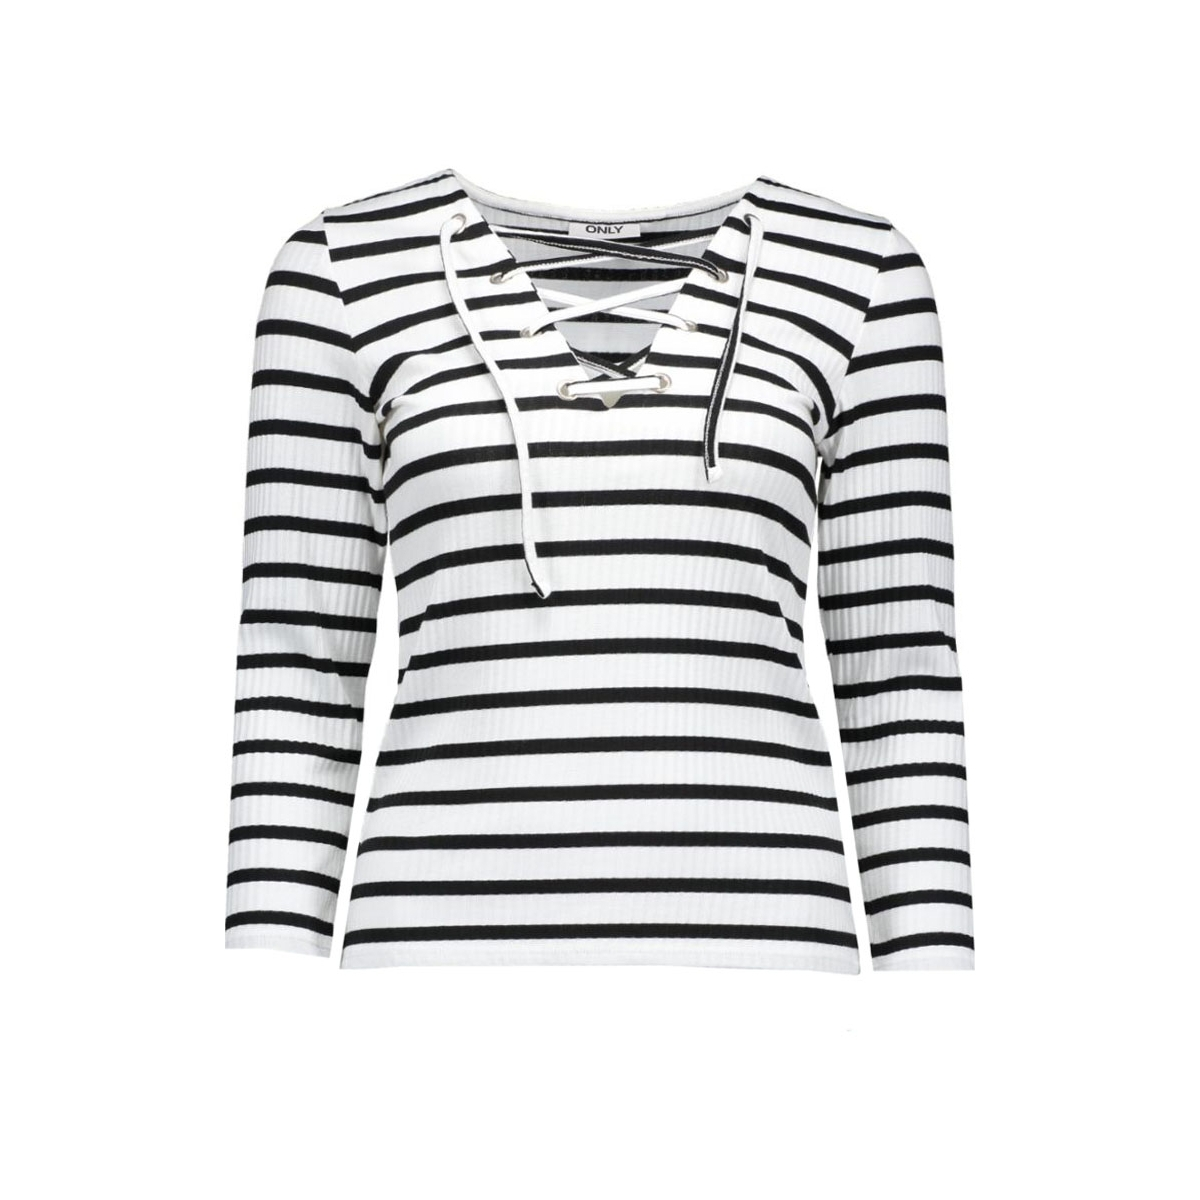 onlstreet stripe lace up 3/4 top jrs 15127638 only t-shirt cloud dancer